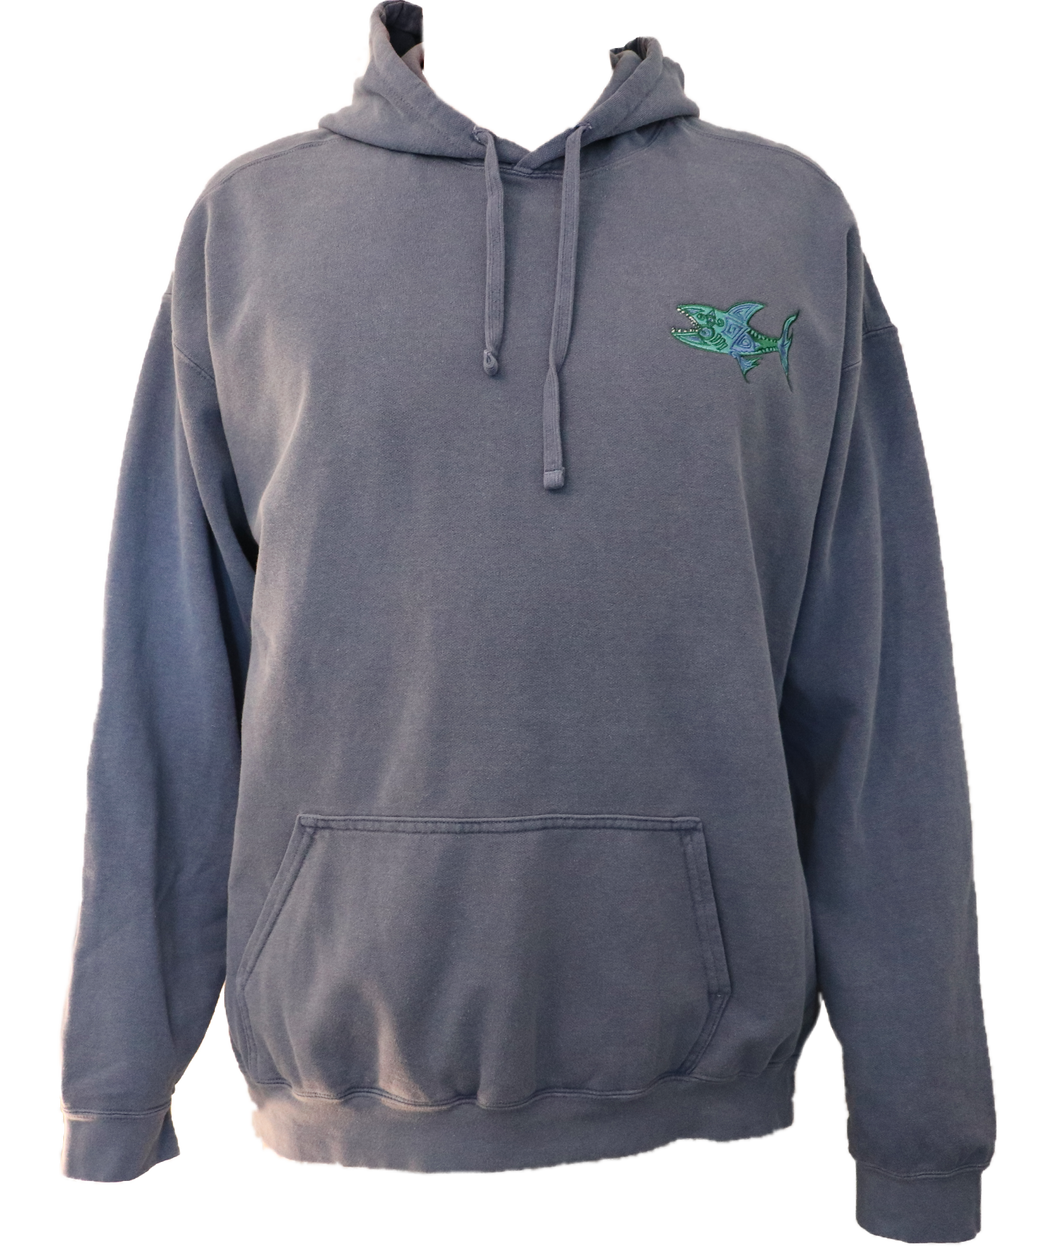 Embroidered Shark Hoodie